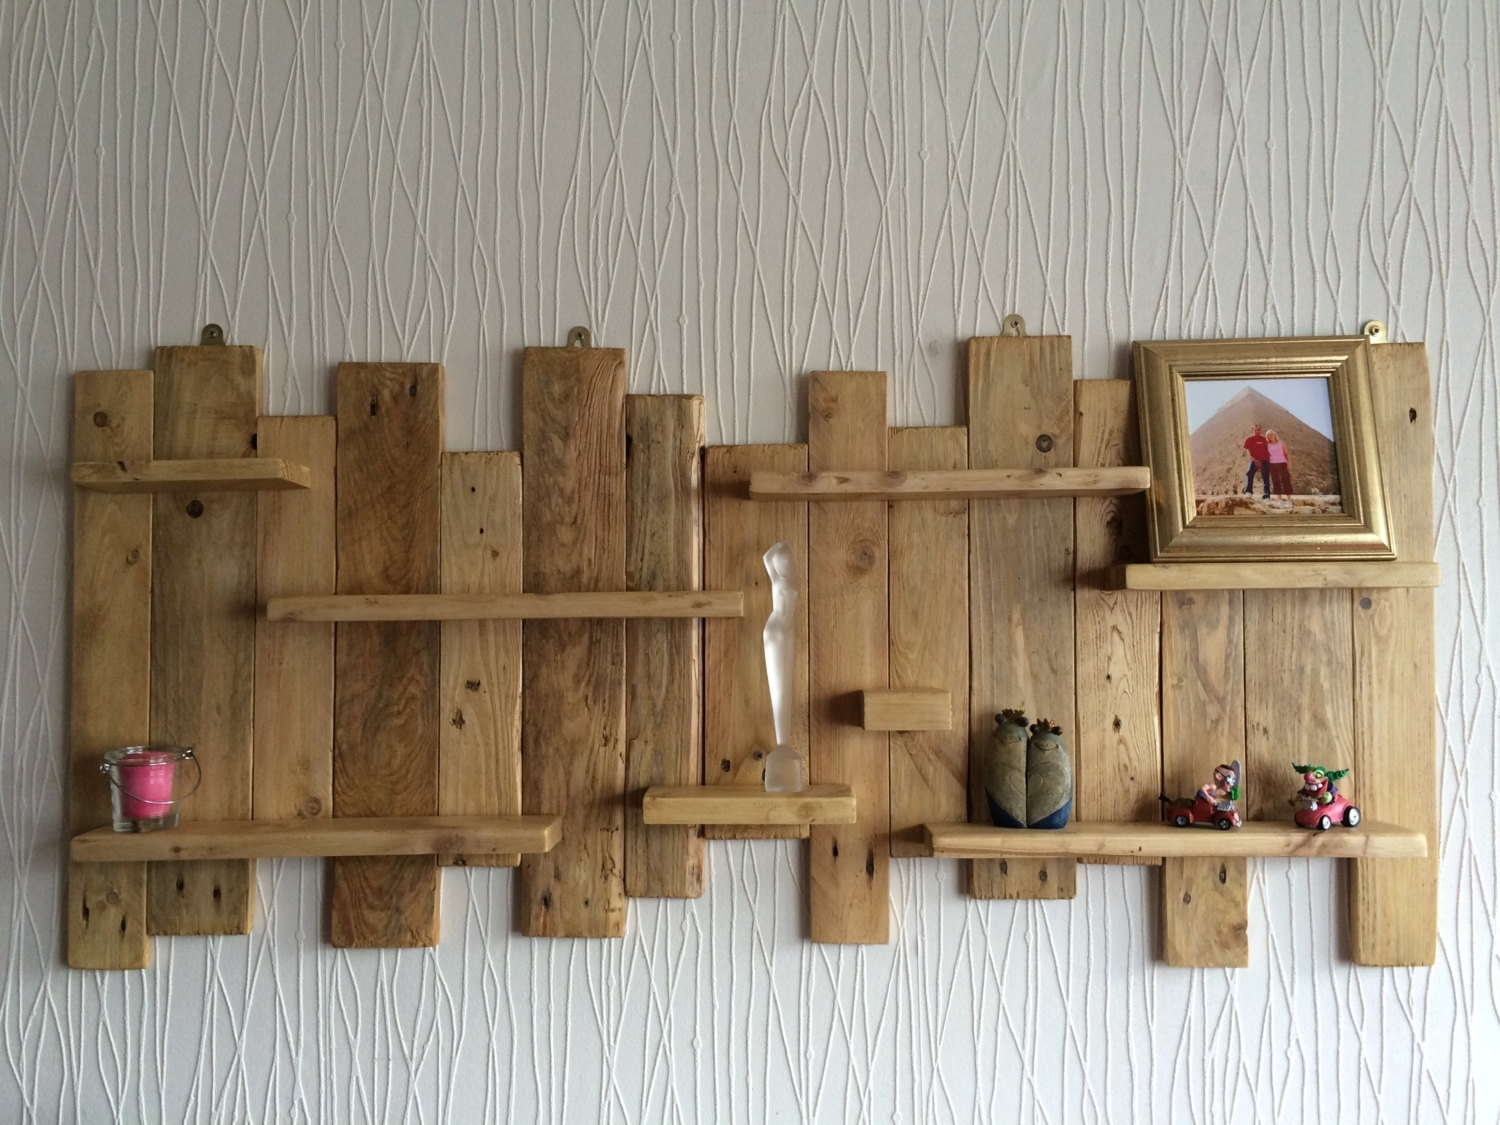 Pallet Wood Wall Art - Turbid within Most Current Pallet Wall Art